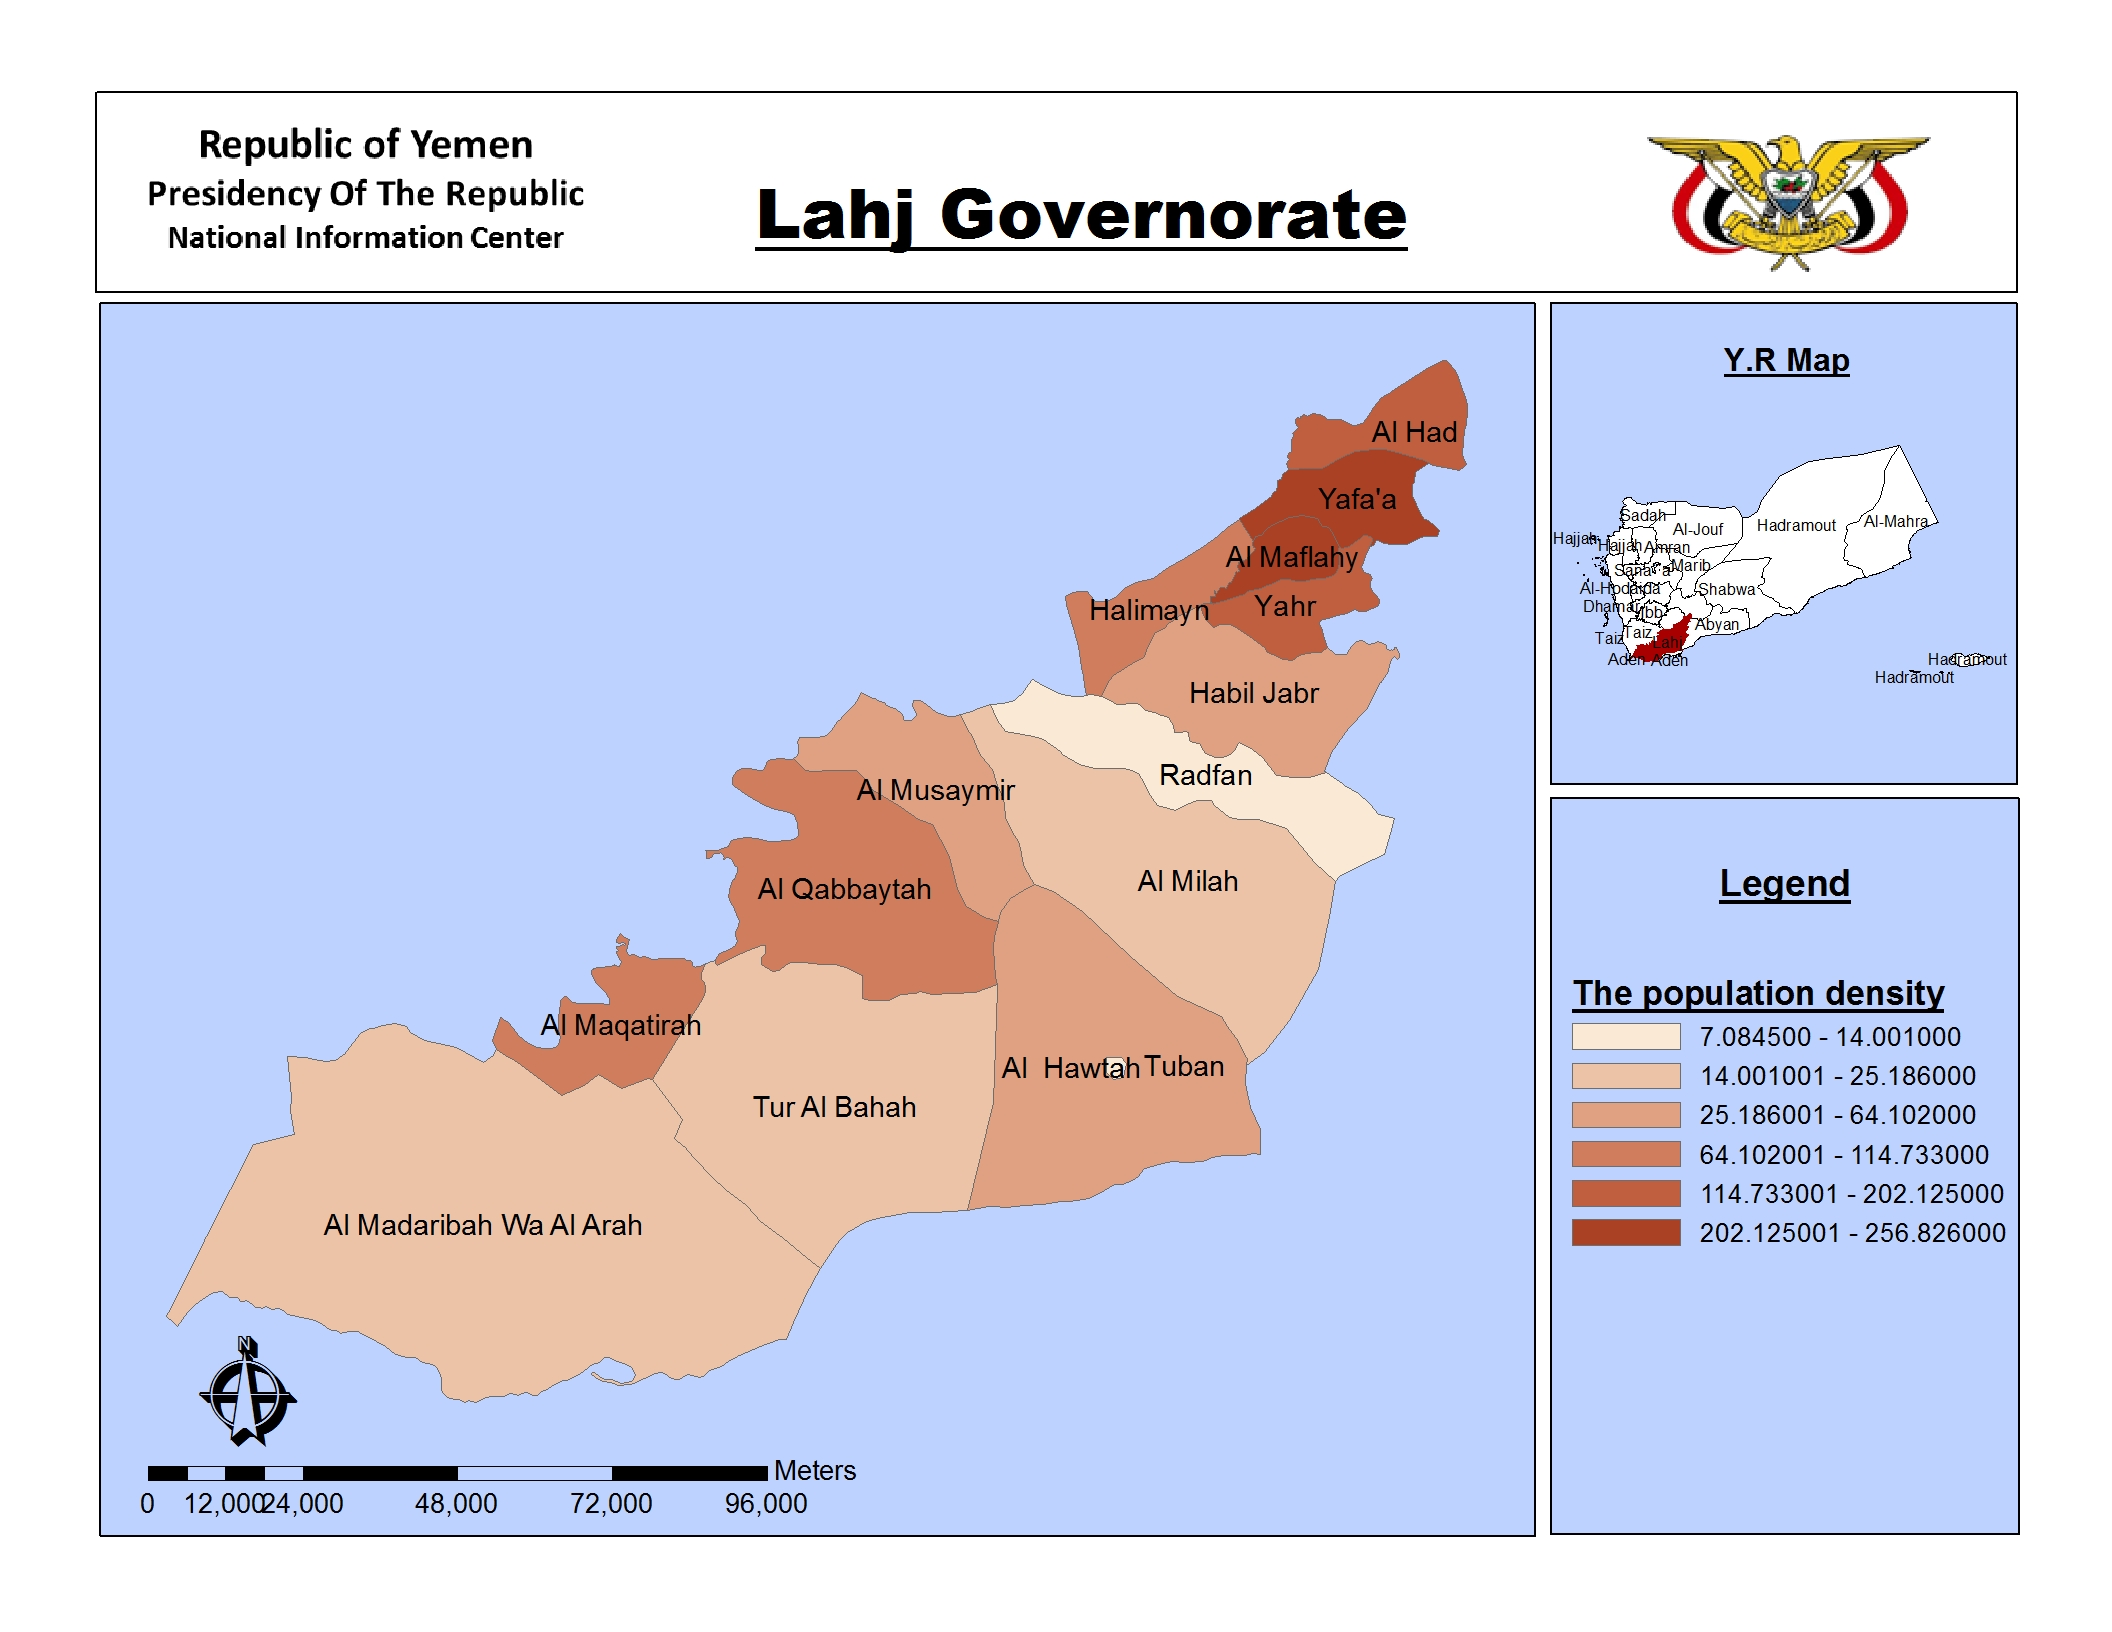 Lahij Governorate on map of russia districts, map of japan districts, map of bhutan districts, map of spain districts, map of guatemala districts, map of cambodia districts, map of ireland districts, map of tajikistan districts, map of iraq districts, map of lesotho districts, map of pakistan districts, map of bangladesh districts, map of monaco districts, map of panama districts, map of germany districts, map of france districts, map of mexico districts, map of afghanistan districts, map of puerto rico districts, map of malawi districts,